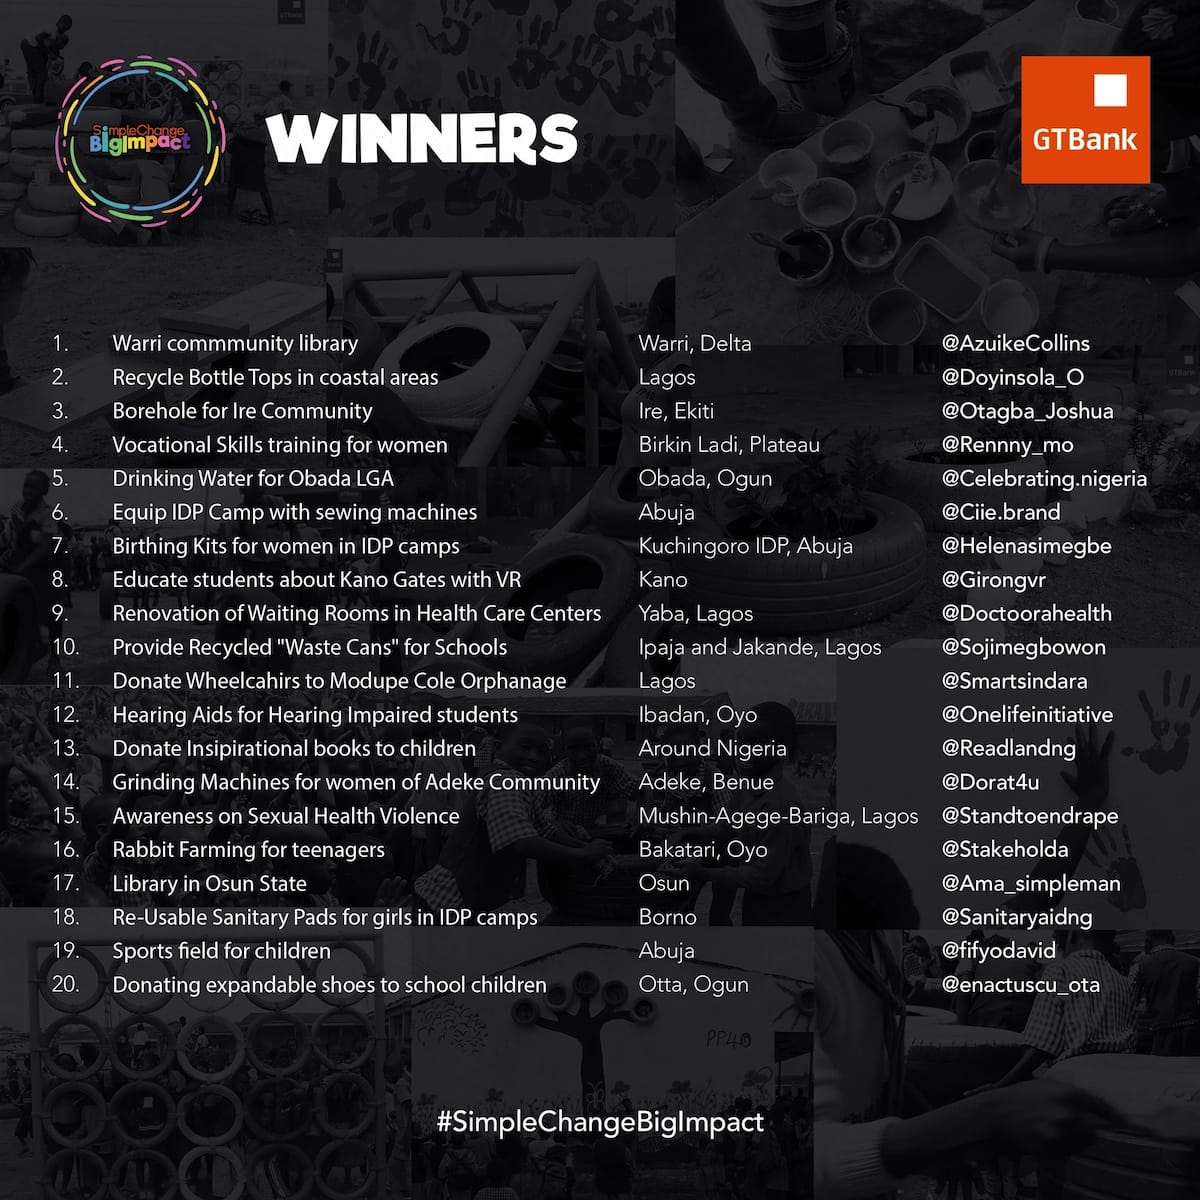 20 winners emerge in GTBank's #SimpleChangeBigImpact challenge